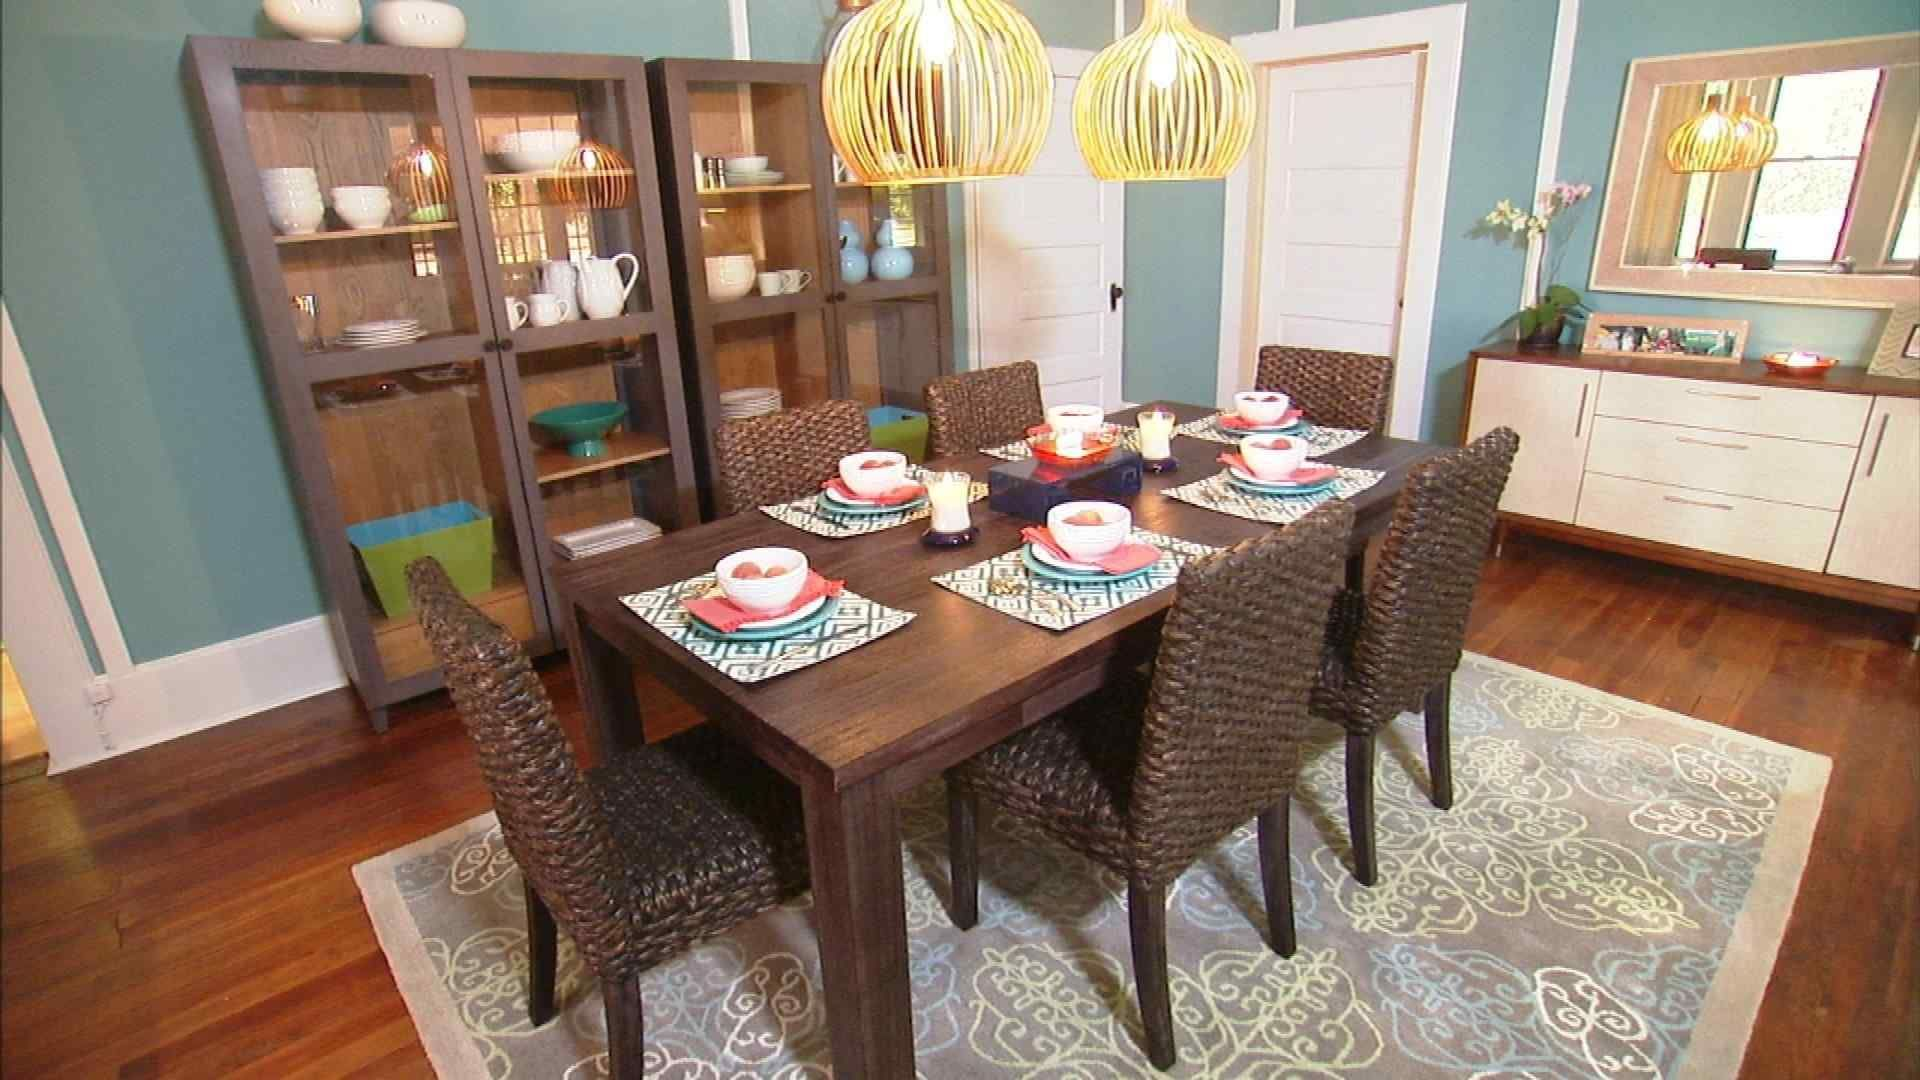 Kitchen Table Centerpiece Ideas For Everyday.Best Of Dining Room Table Centerpiece Ideas Everyday Simple Home